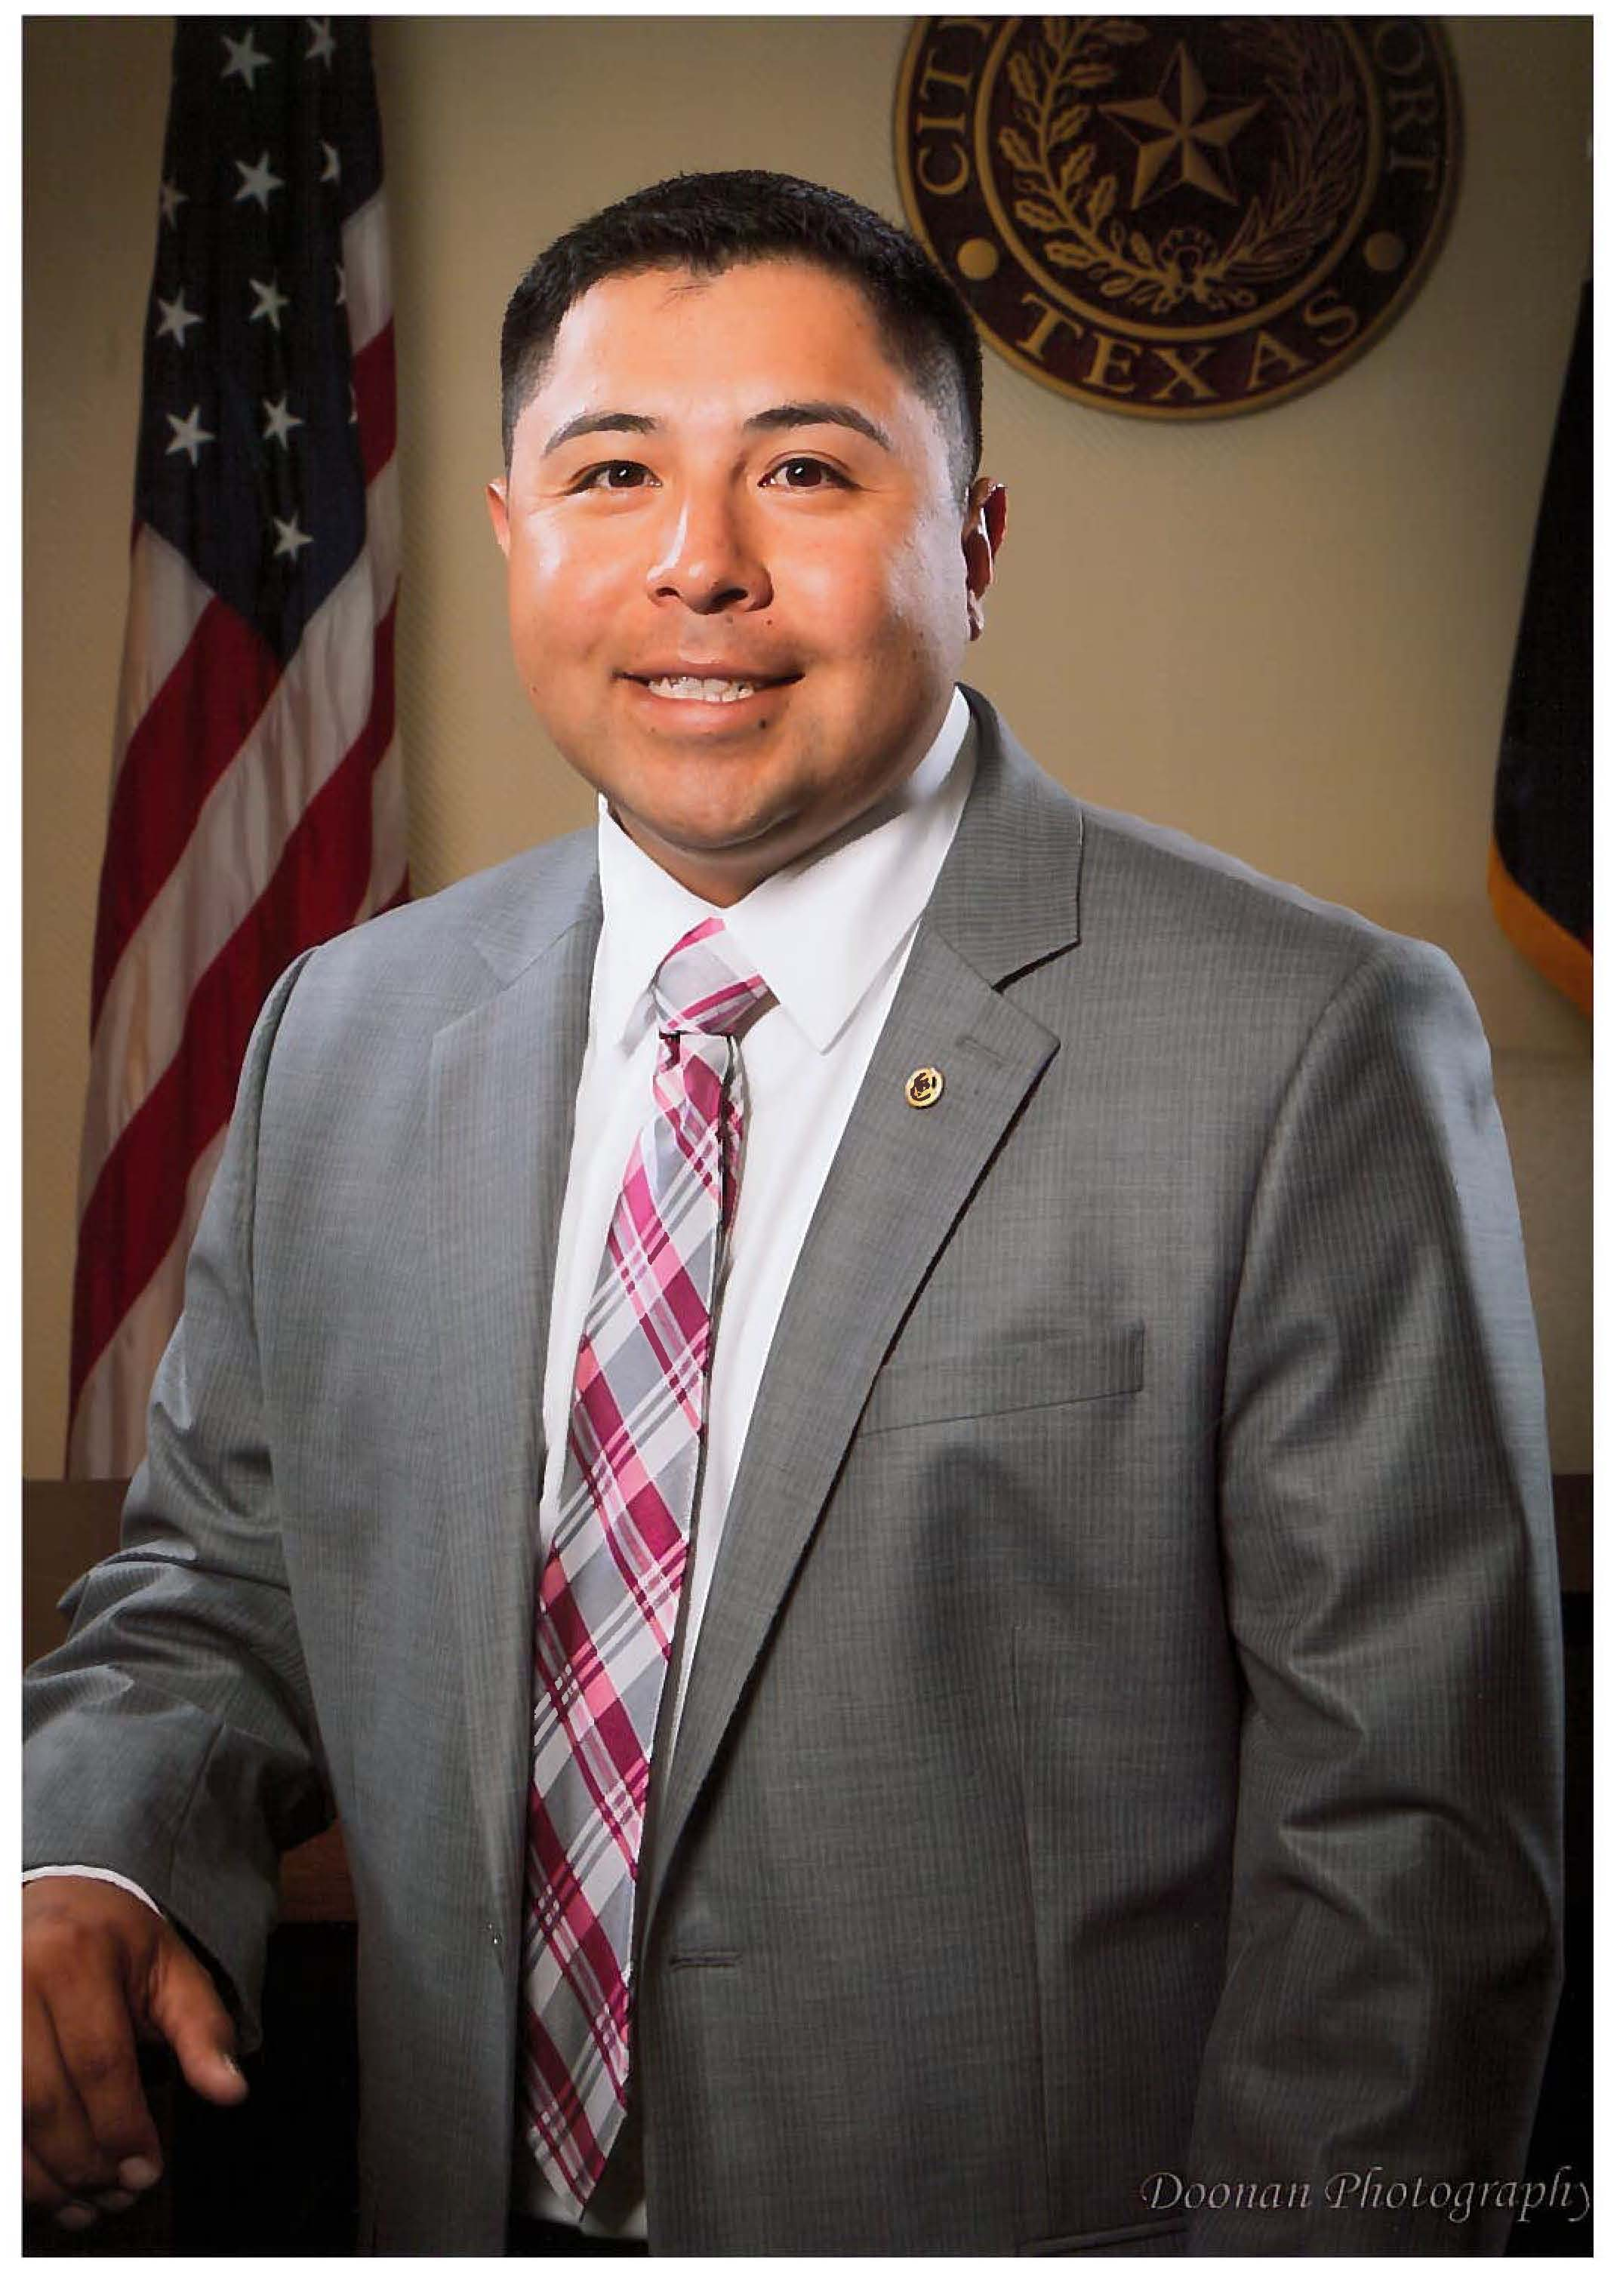 J.D. Villa, Council Member Ward 2